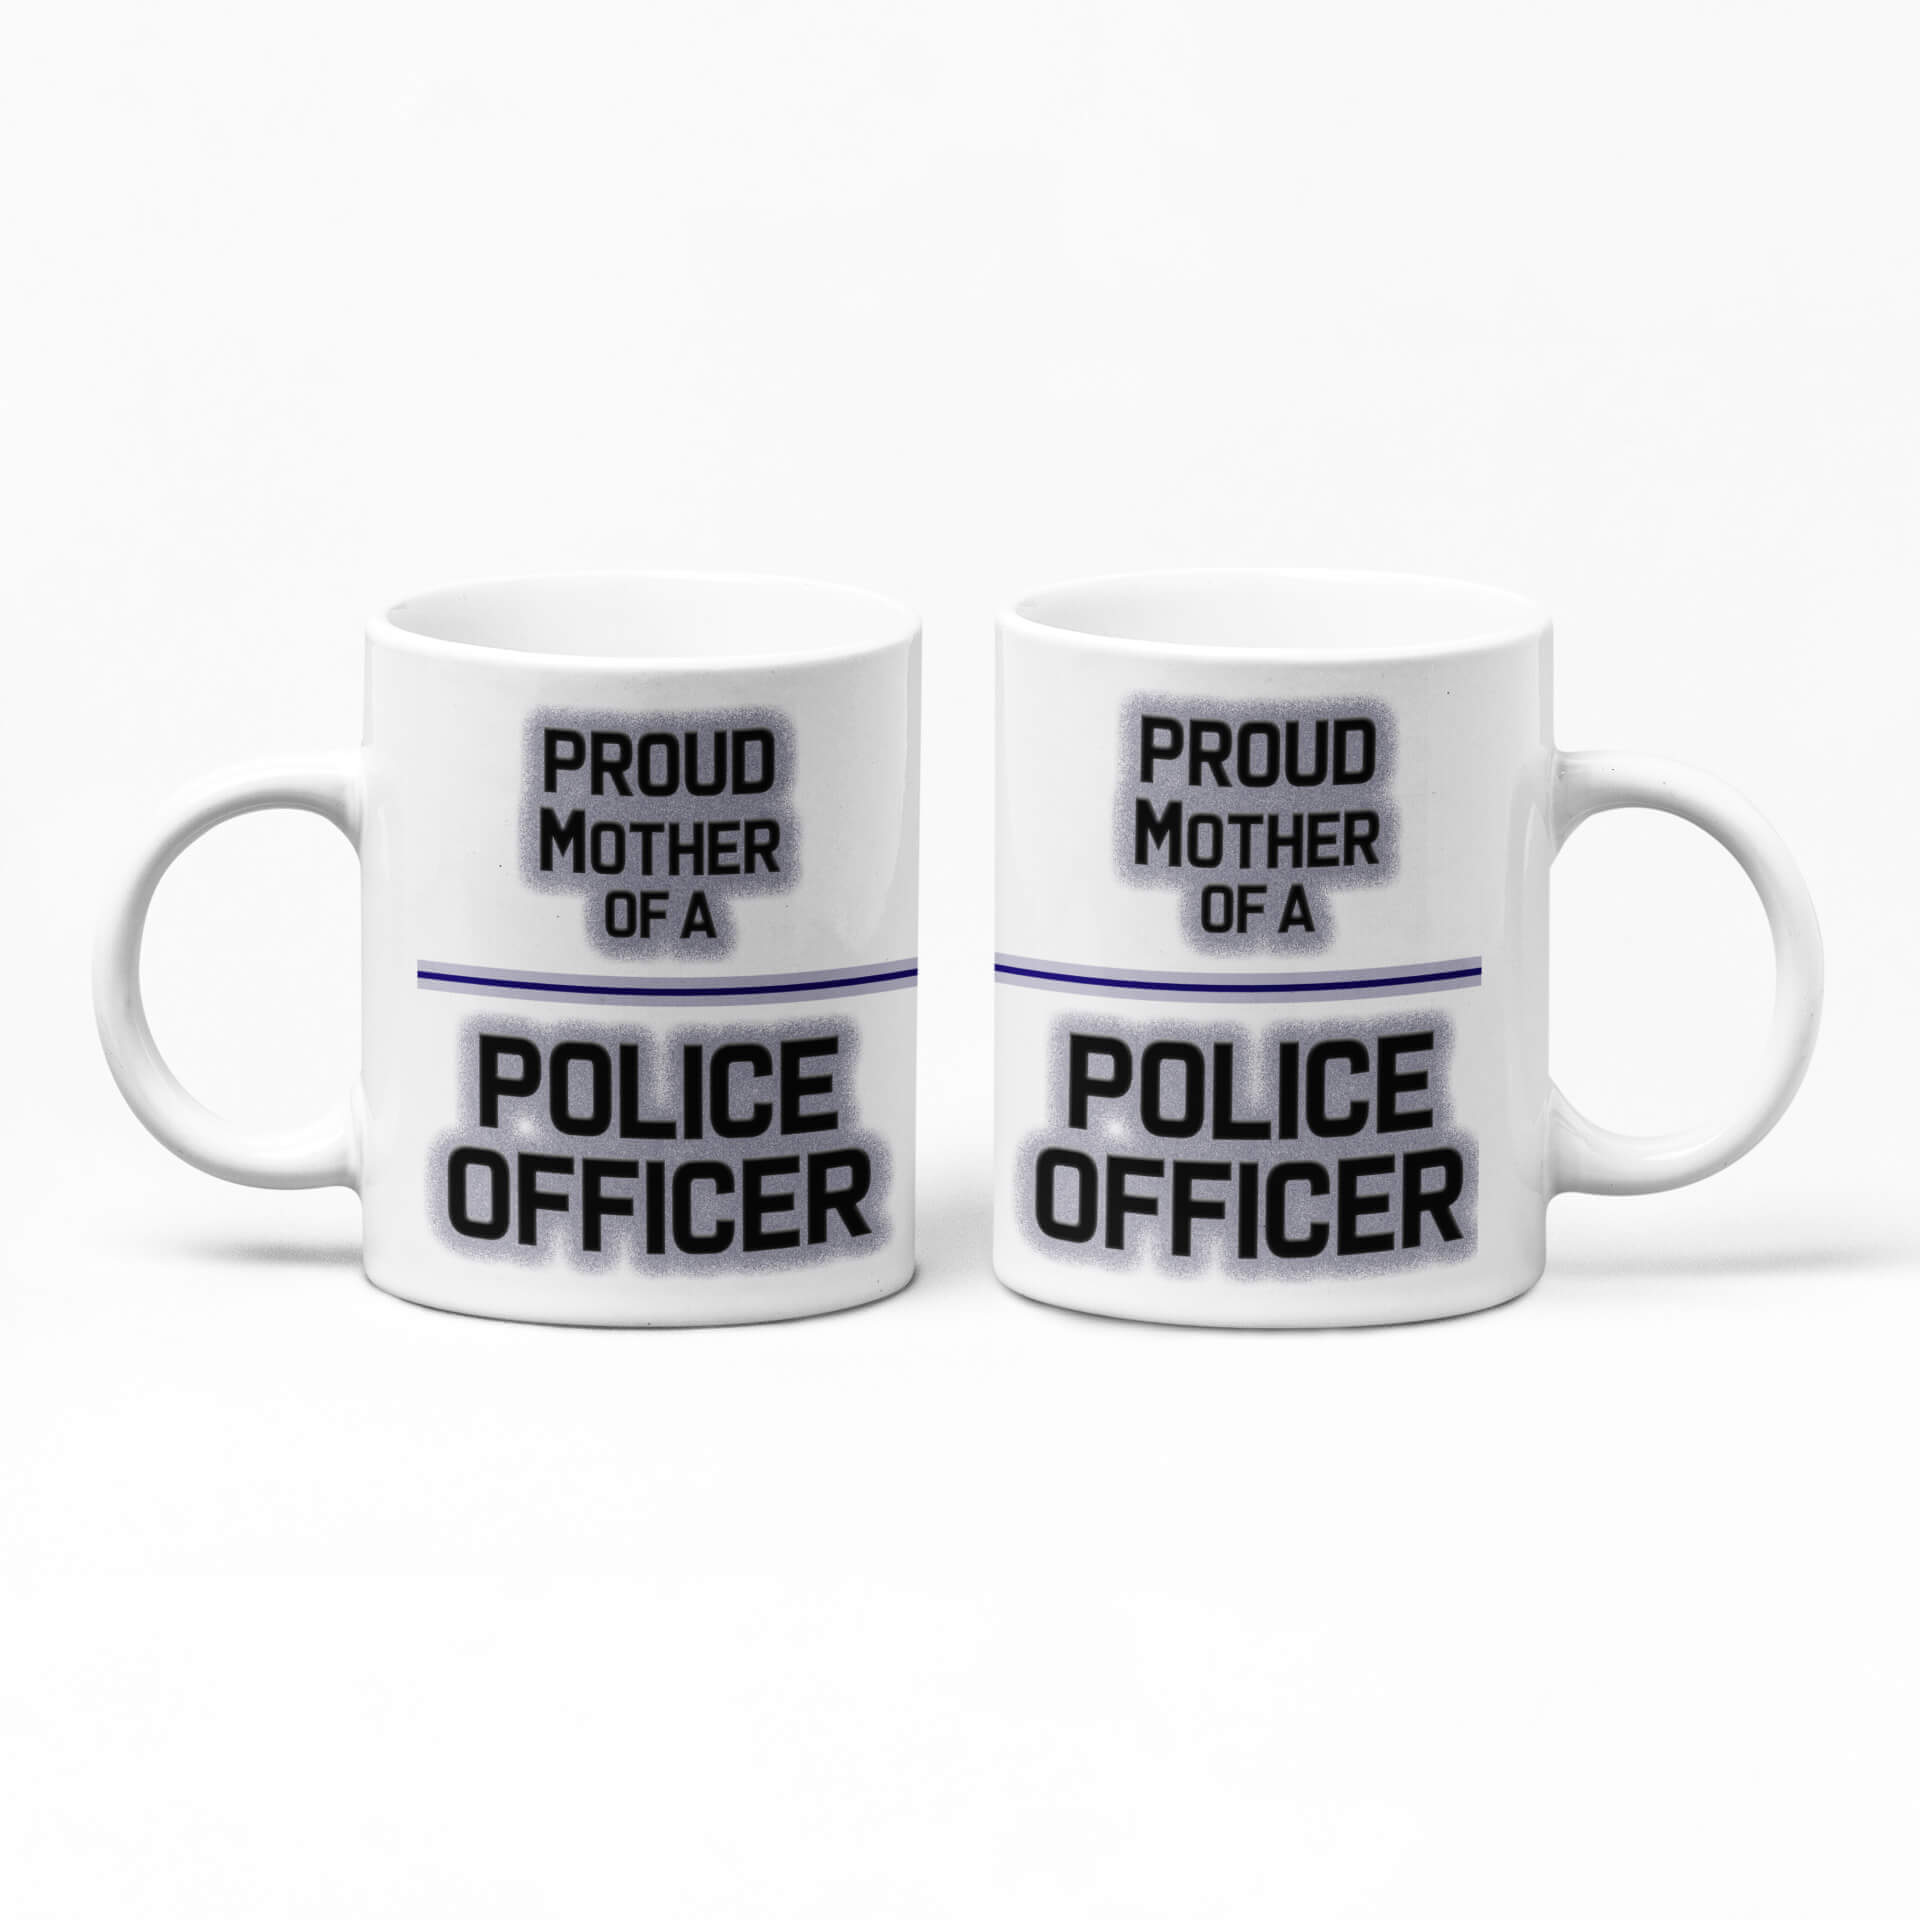 Proud Mother of a Police Officer Mug